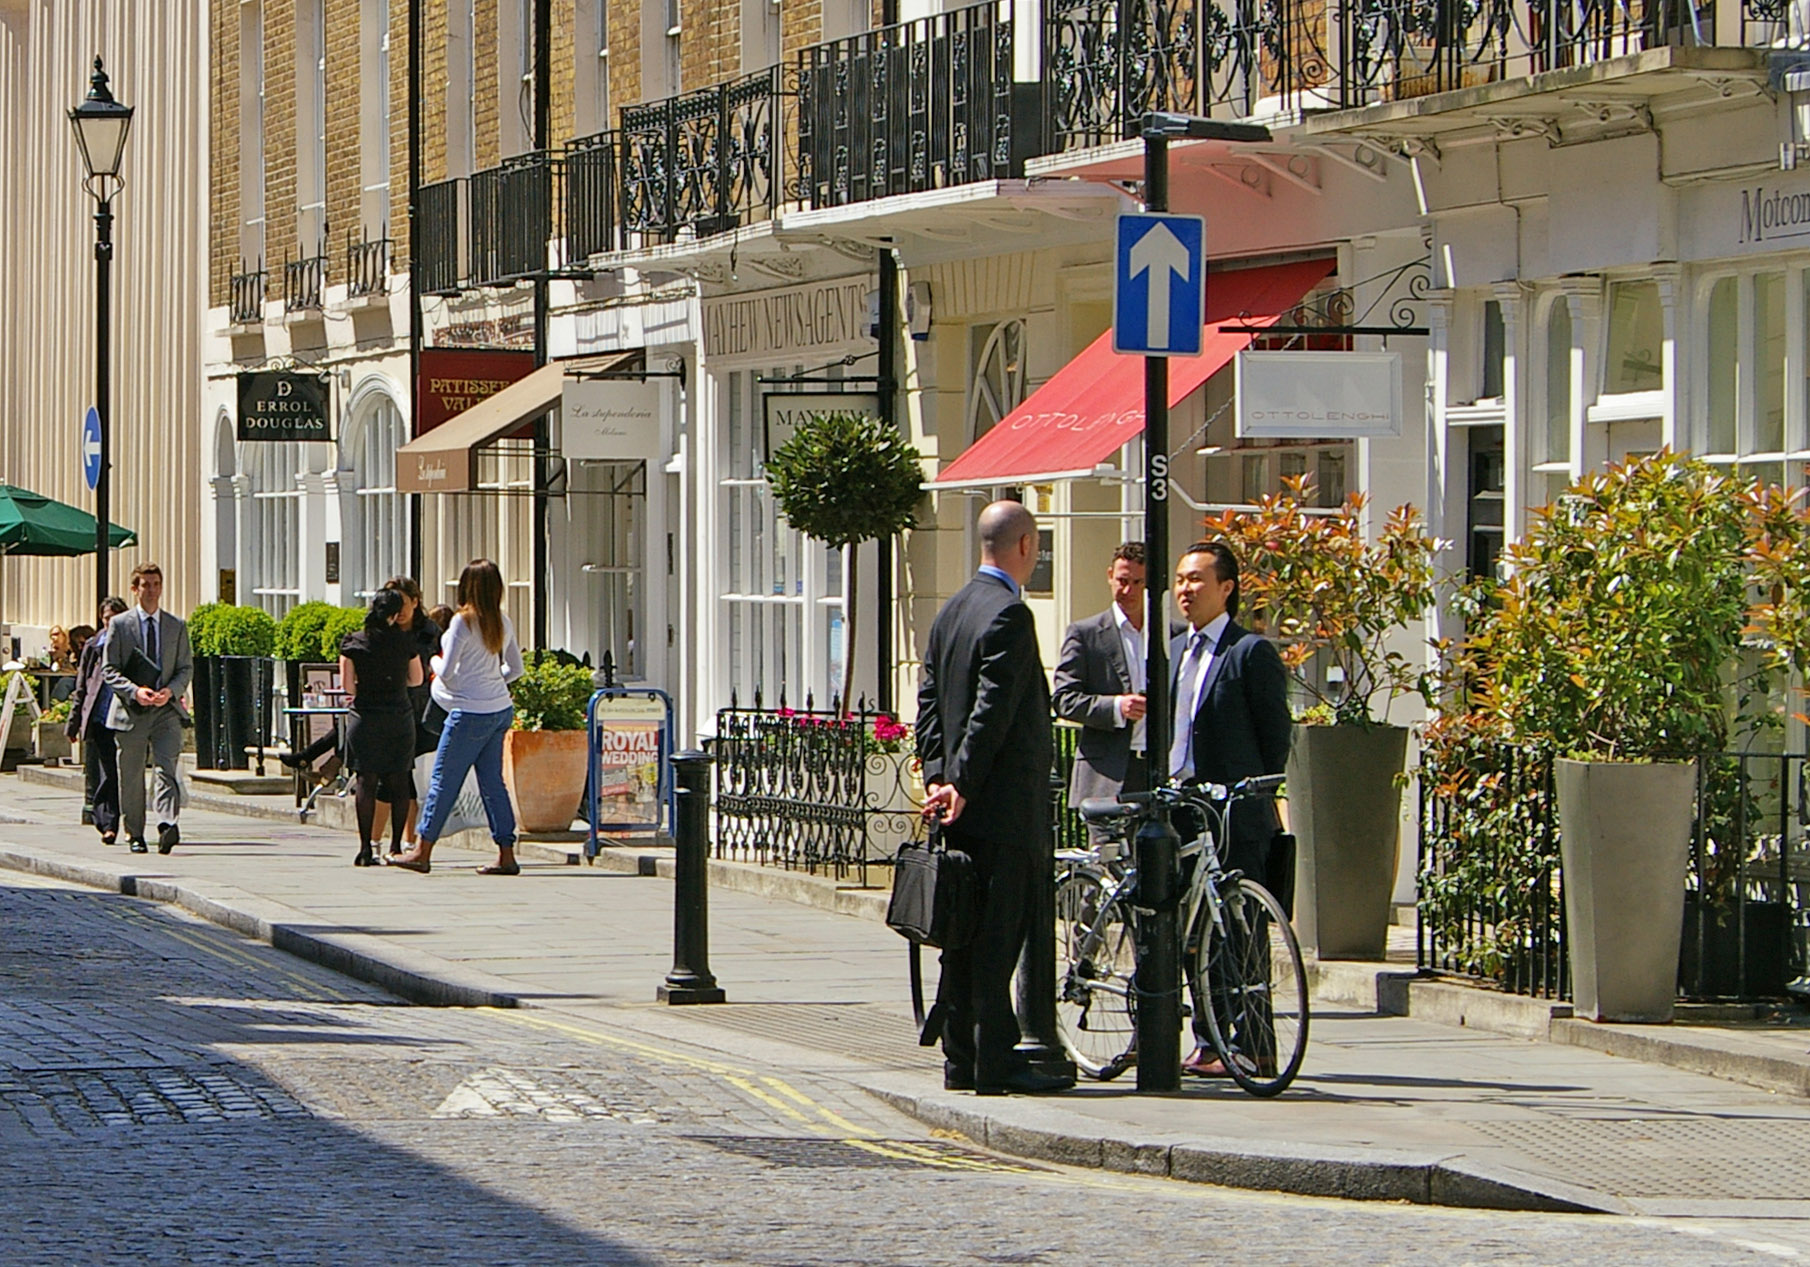 Motcomb Street London_cropped.jpg